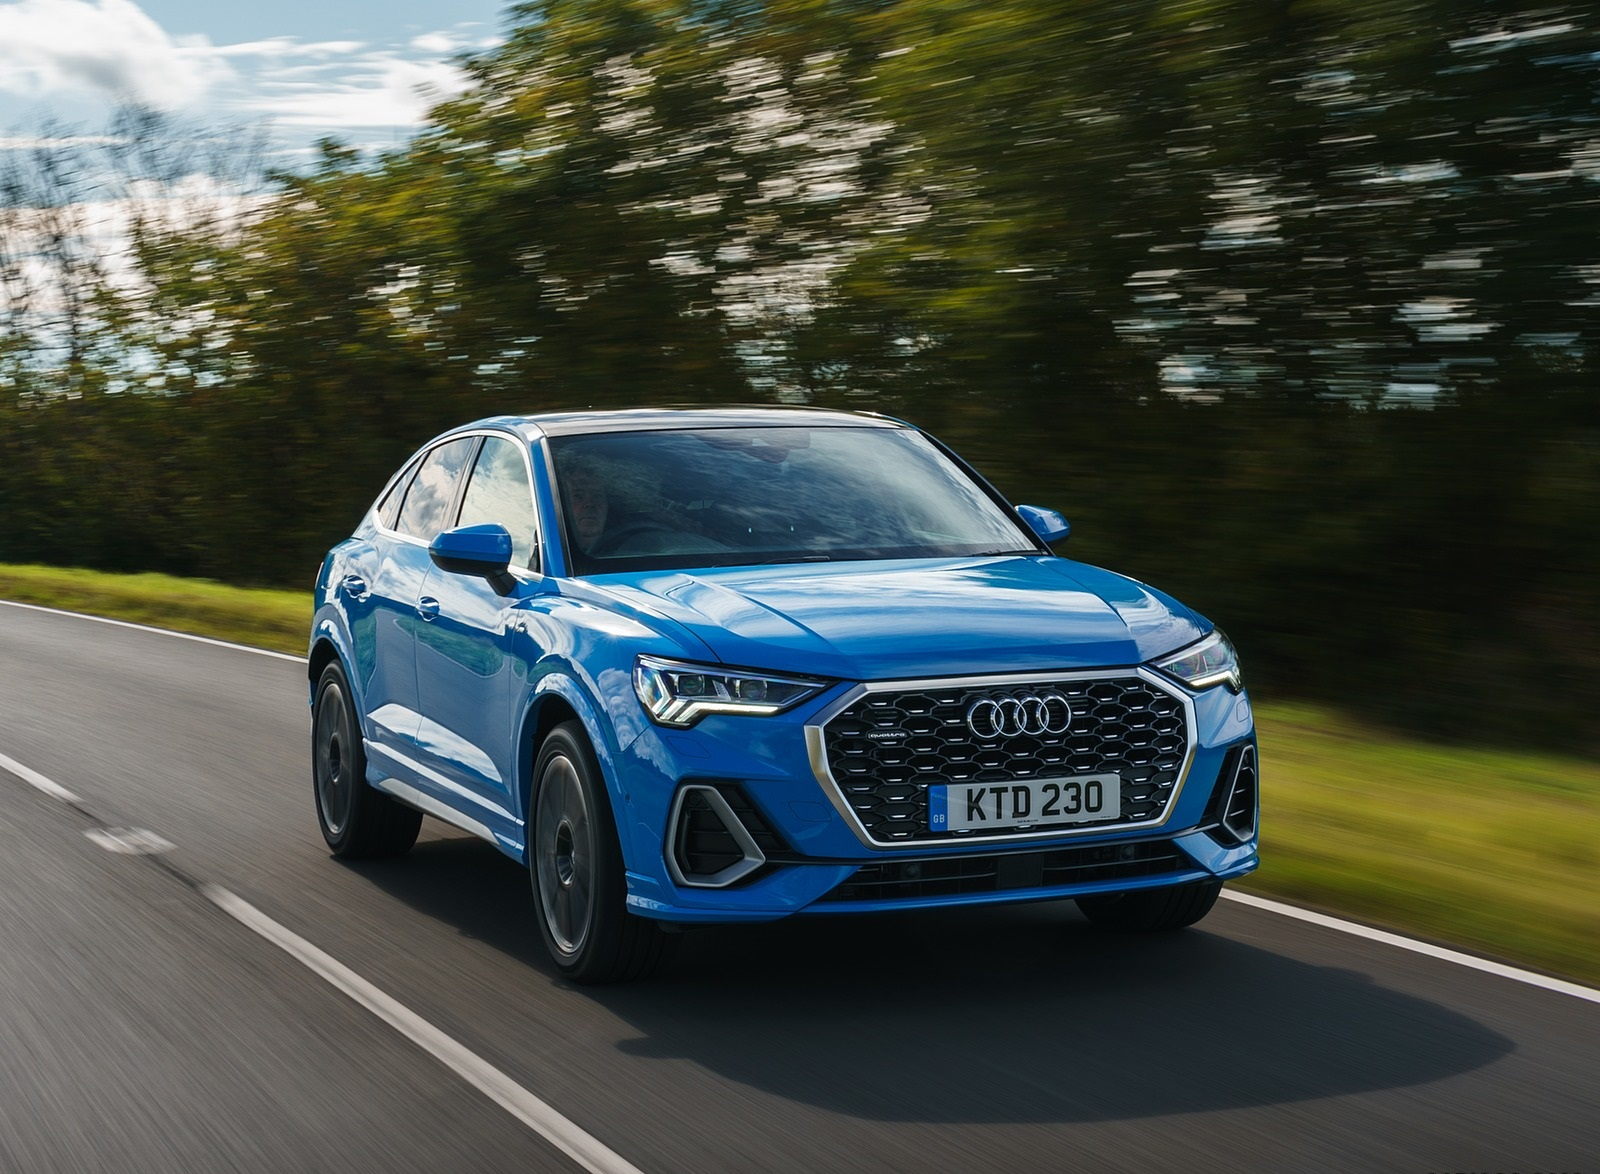 2020 Audi Q3 Sportback 45 TFSI quattro (UK-Spec) Front Three-Quarter Wallpapers (4)